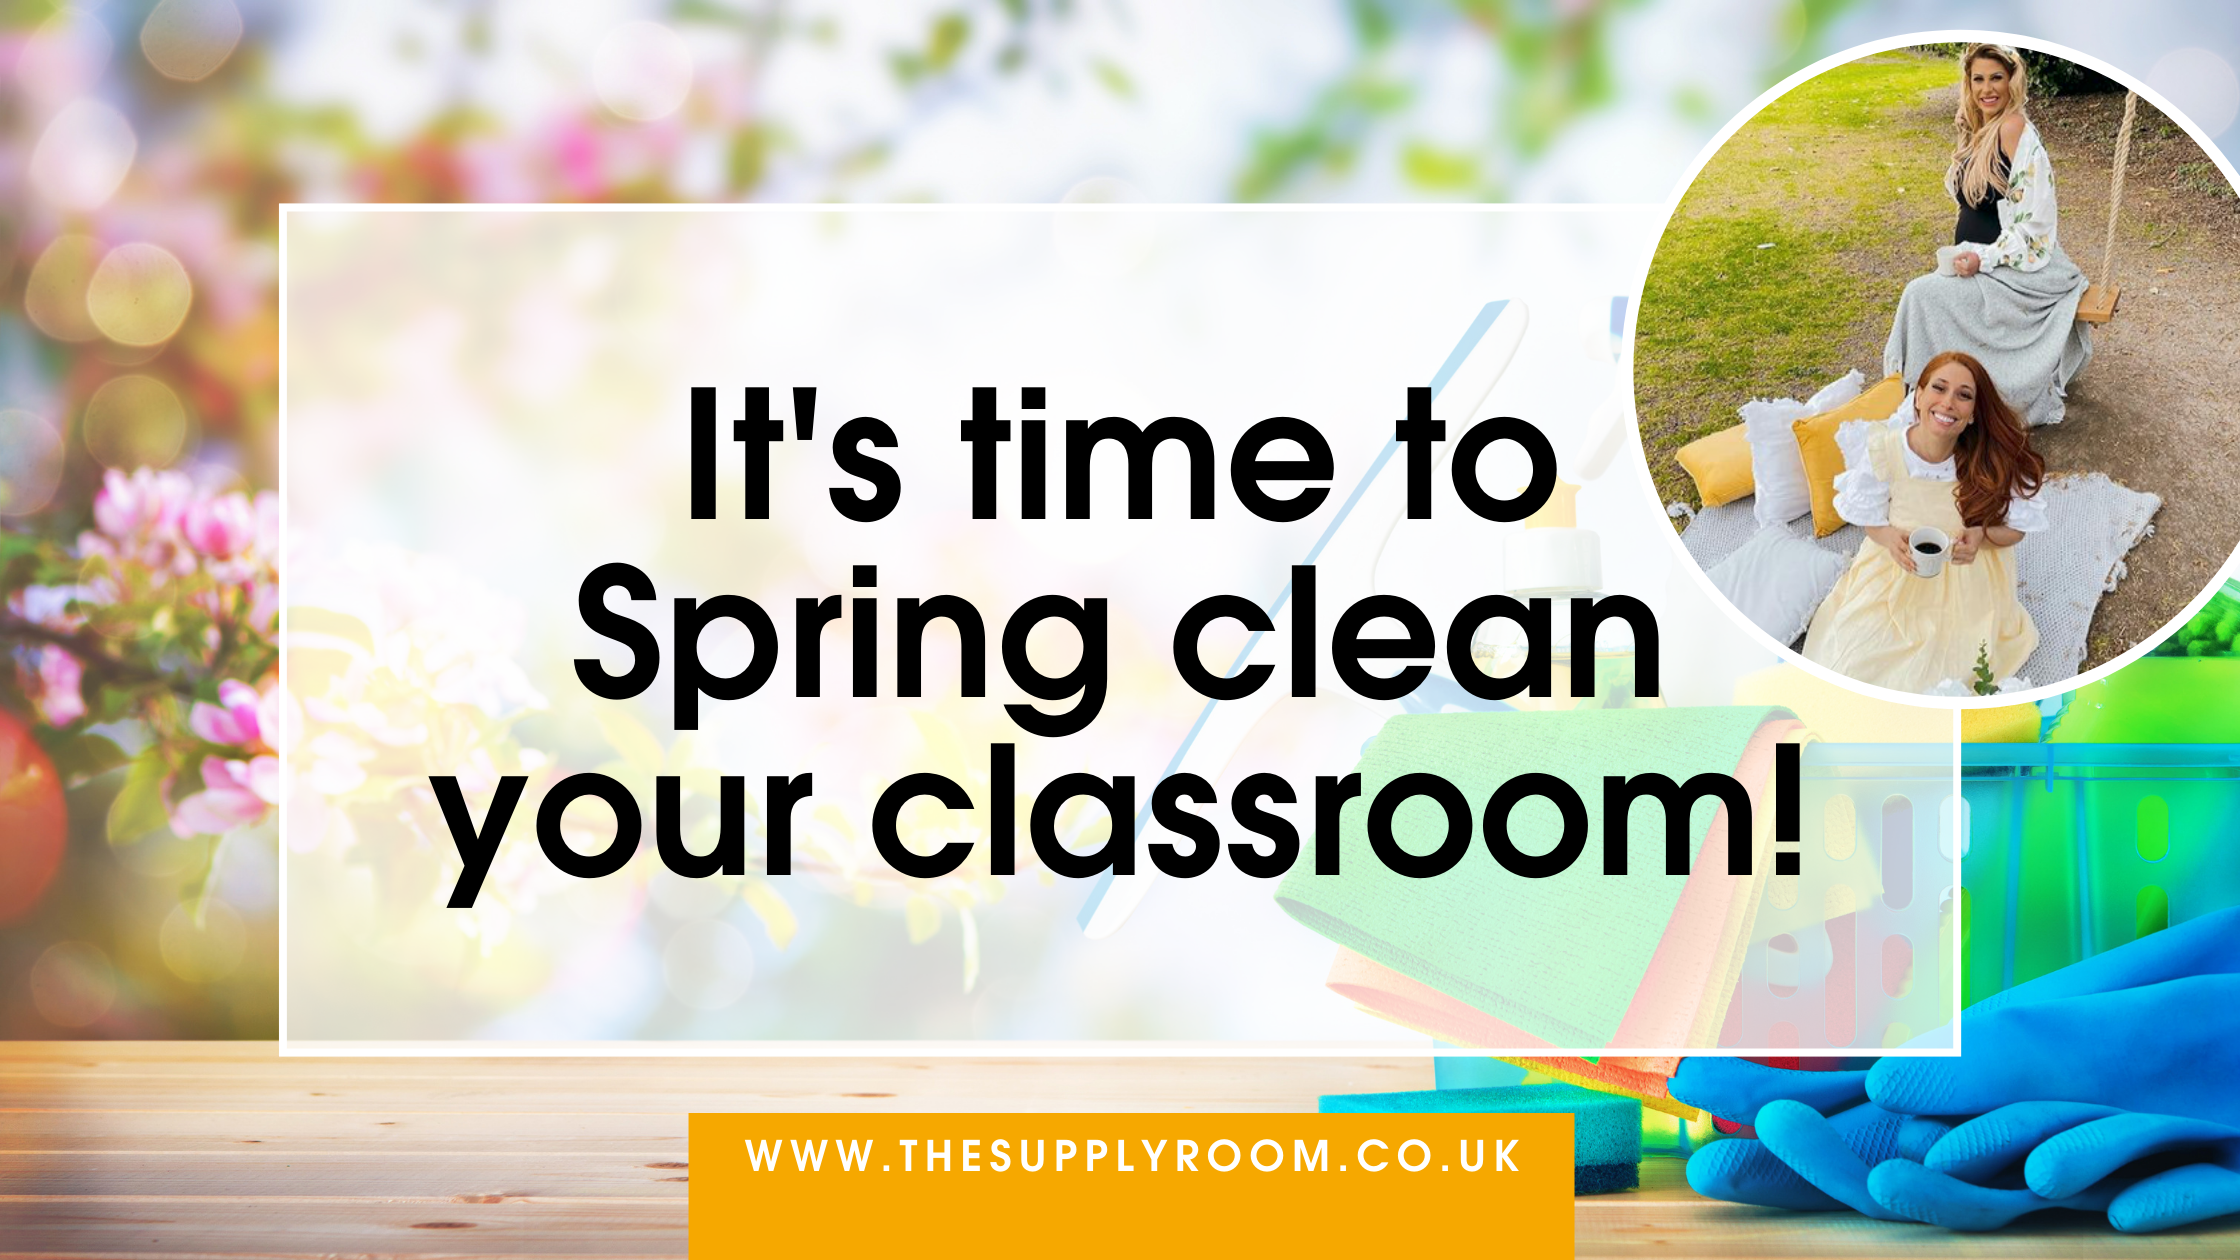 Spring clean your classroom